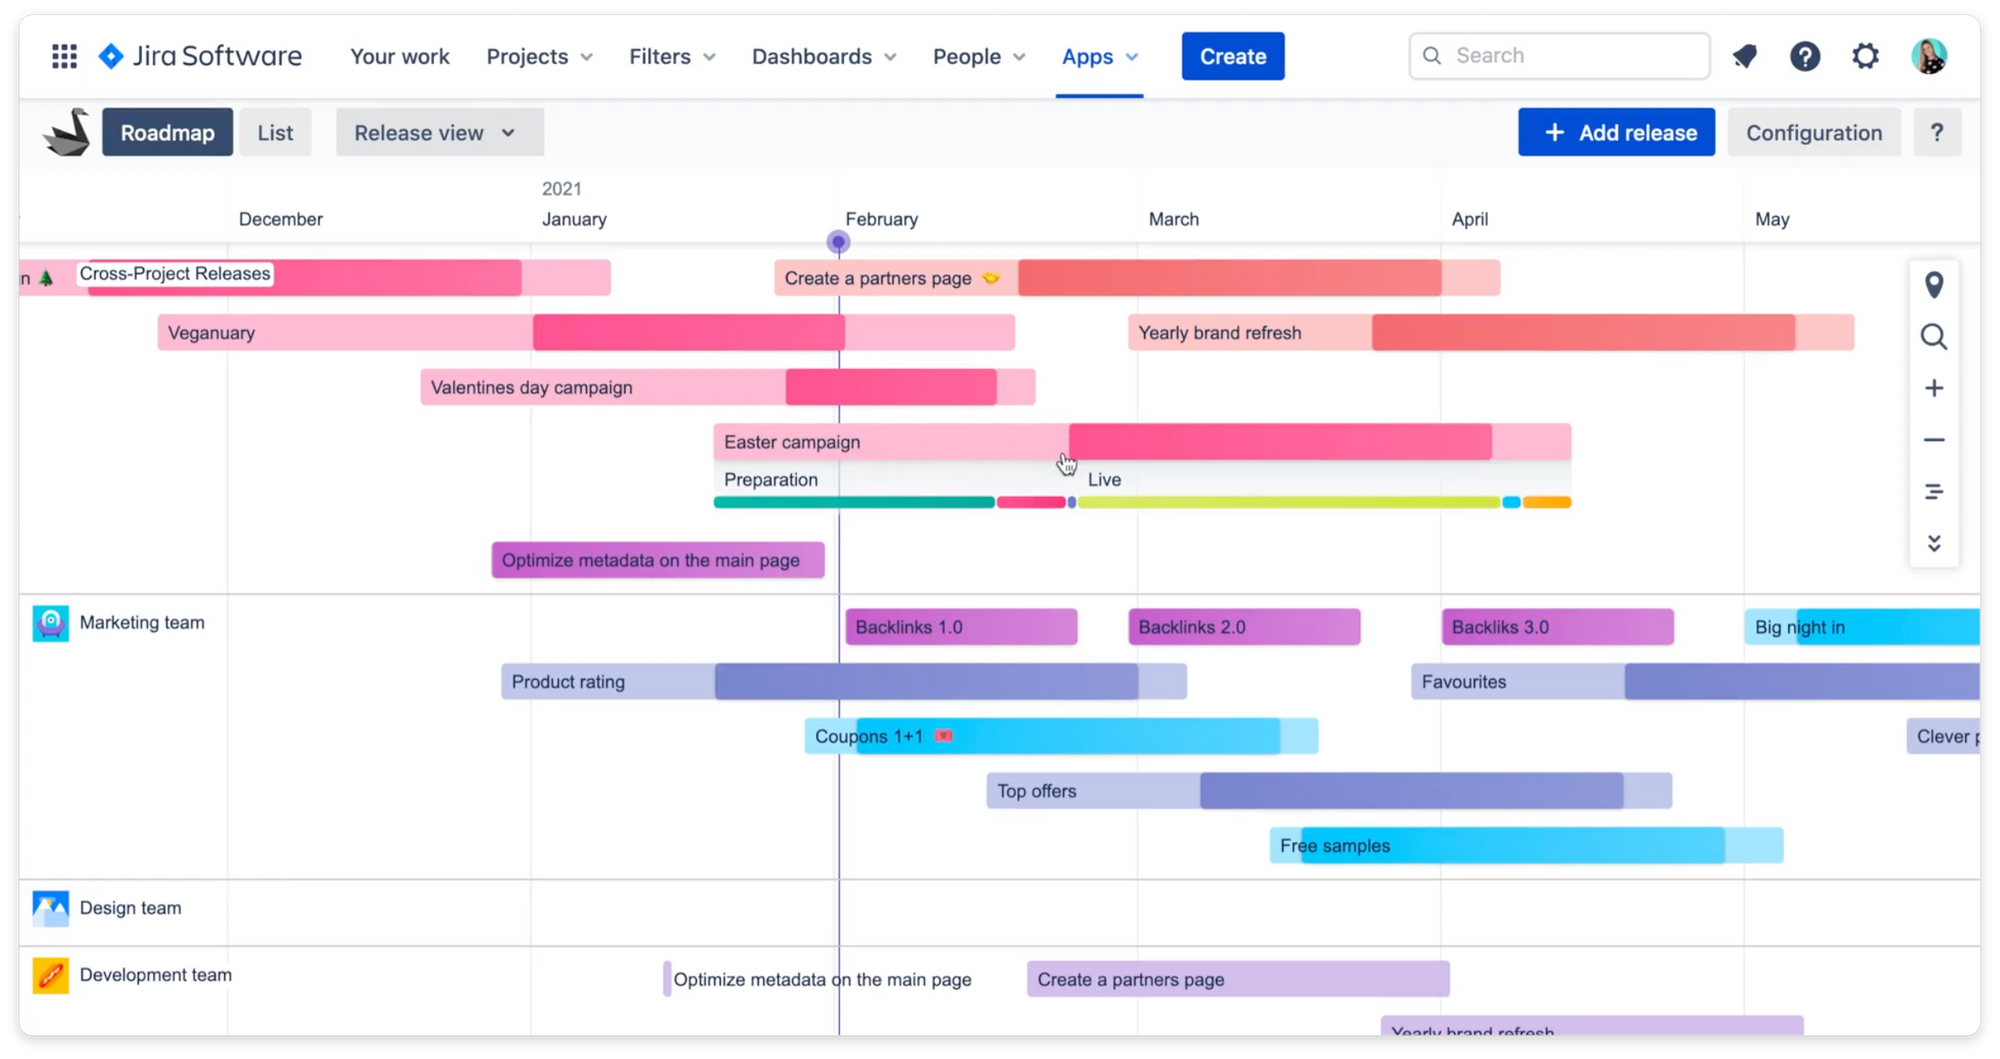 Swanly project management for Jira - roadmap